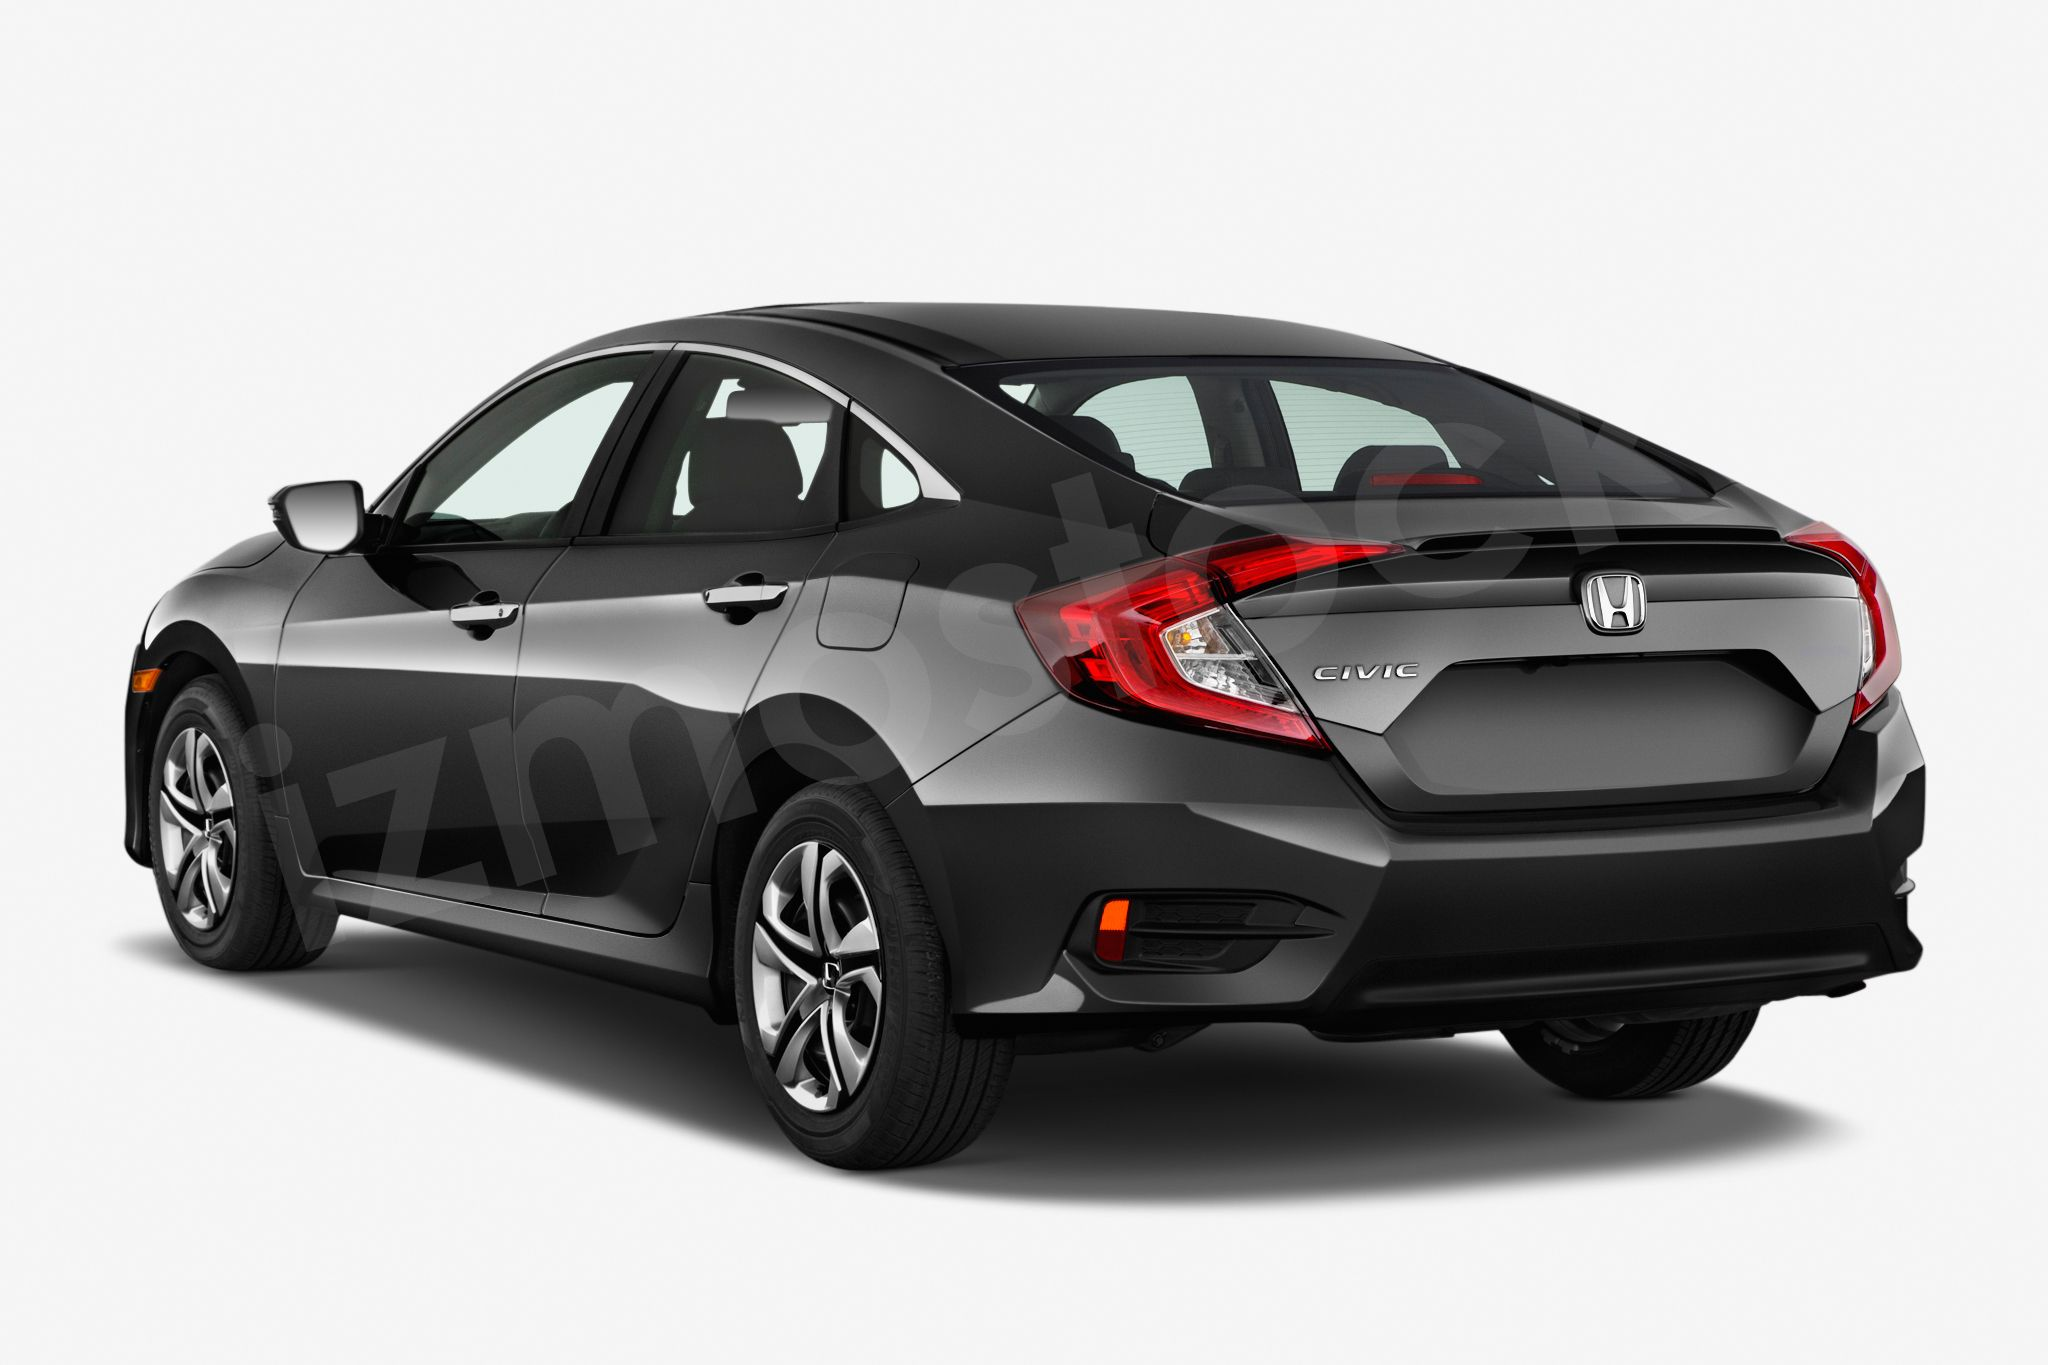 2017 HONDA CIVIC LX SEDAN REVIEW THE QUINTESSENTIAL